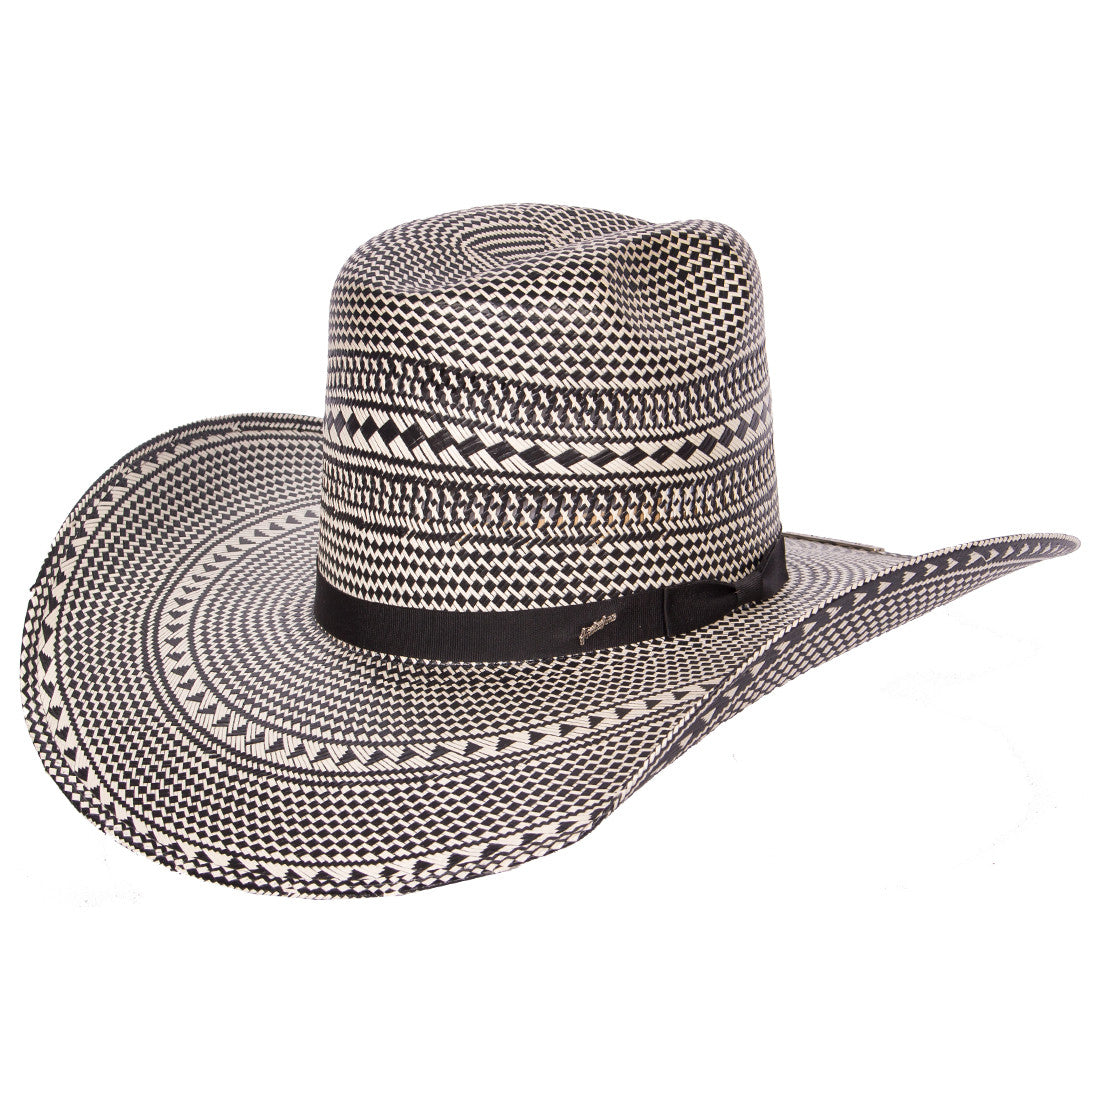 Tombstone 1951 Black/Natural Cowboy Hat